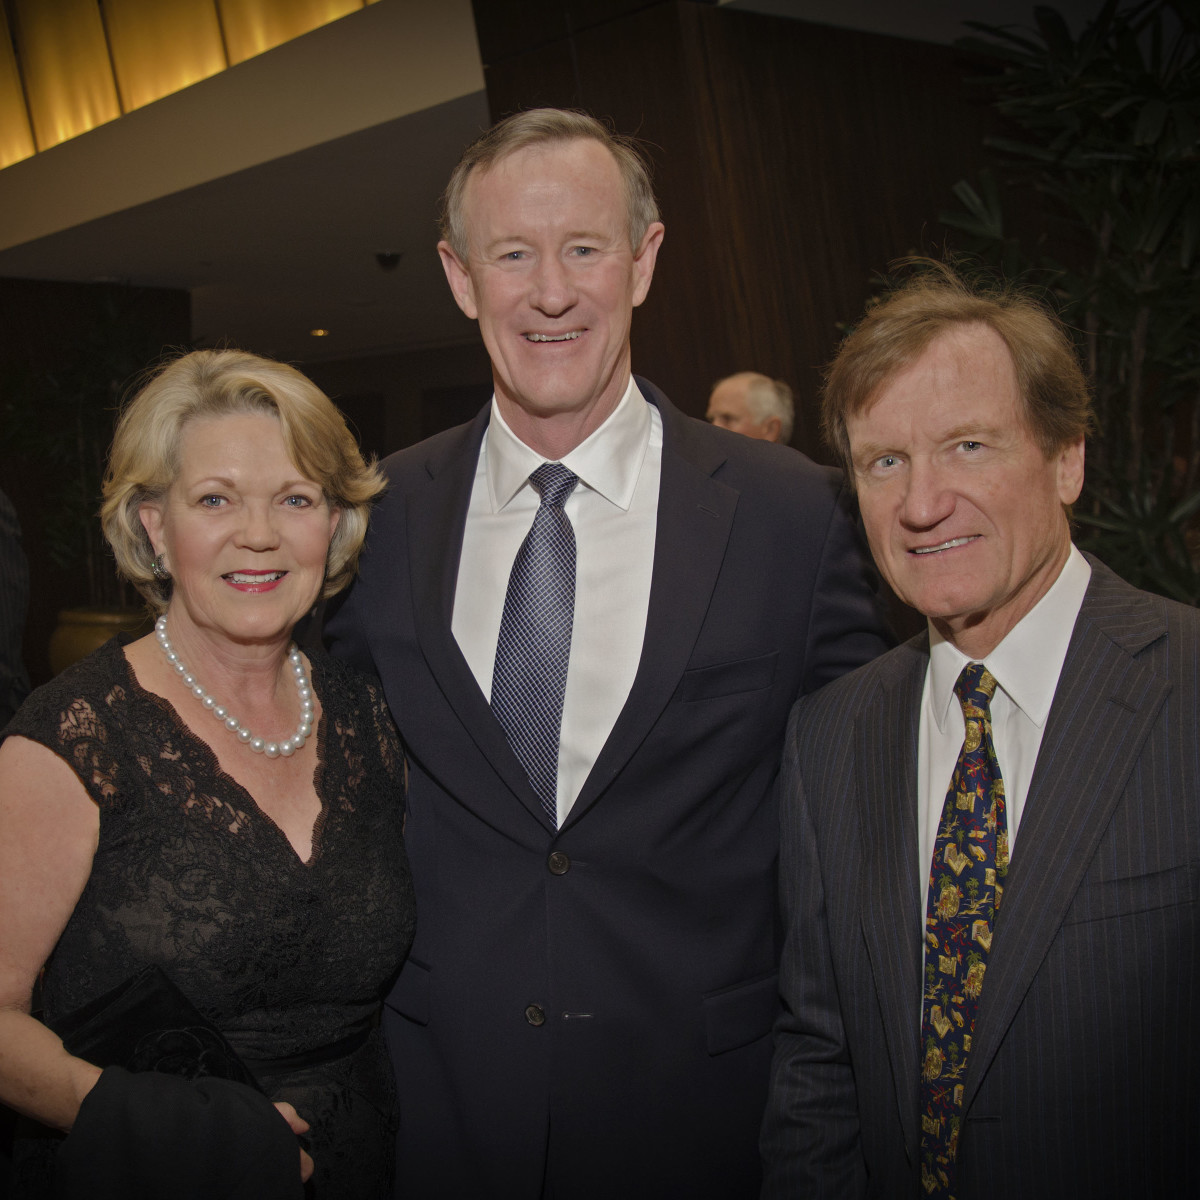 Texas Heart Institute dinner, Feb. 2016, Pam Ott, William McRaven, Dr. David Ott